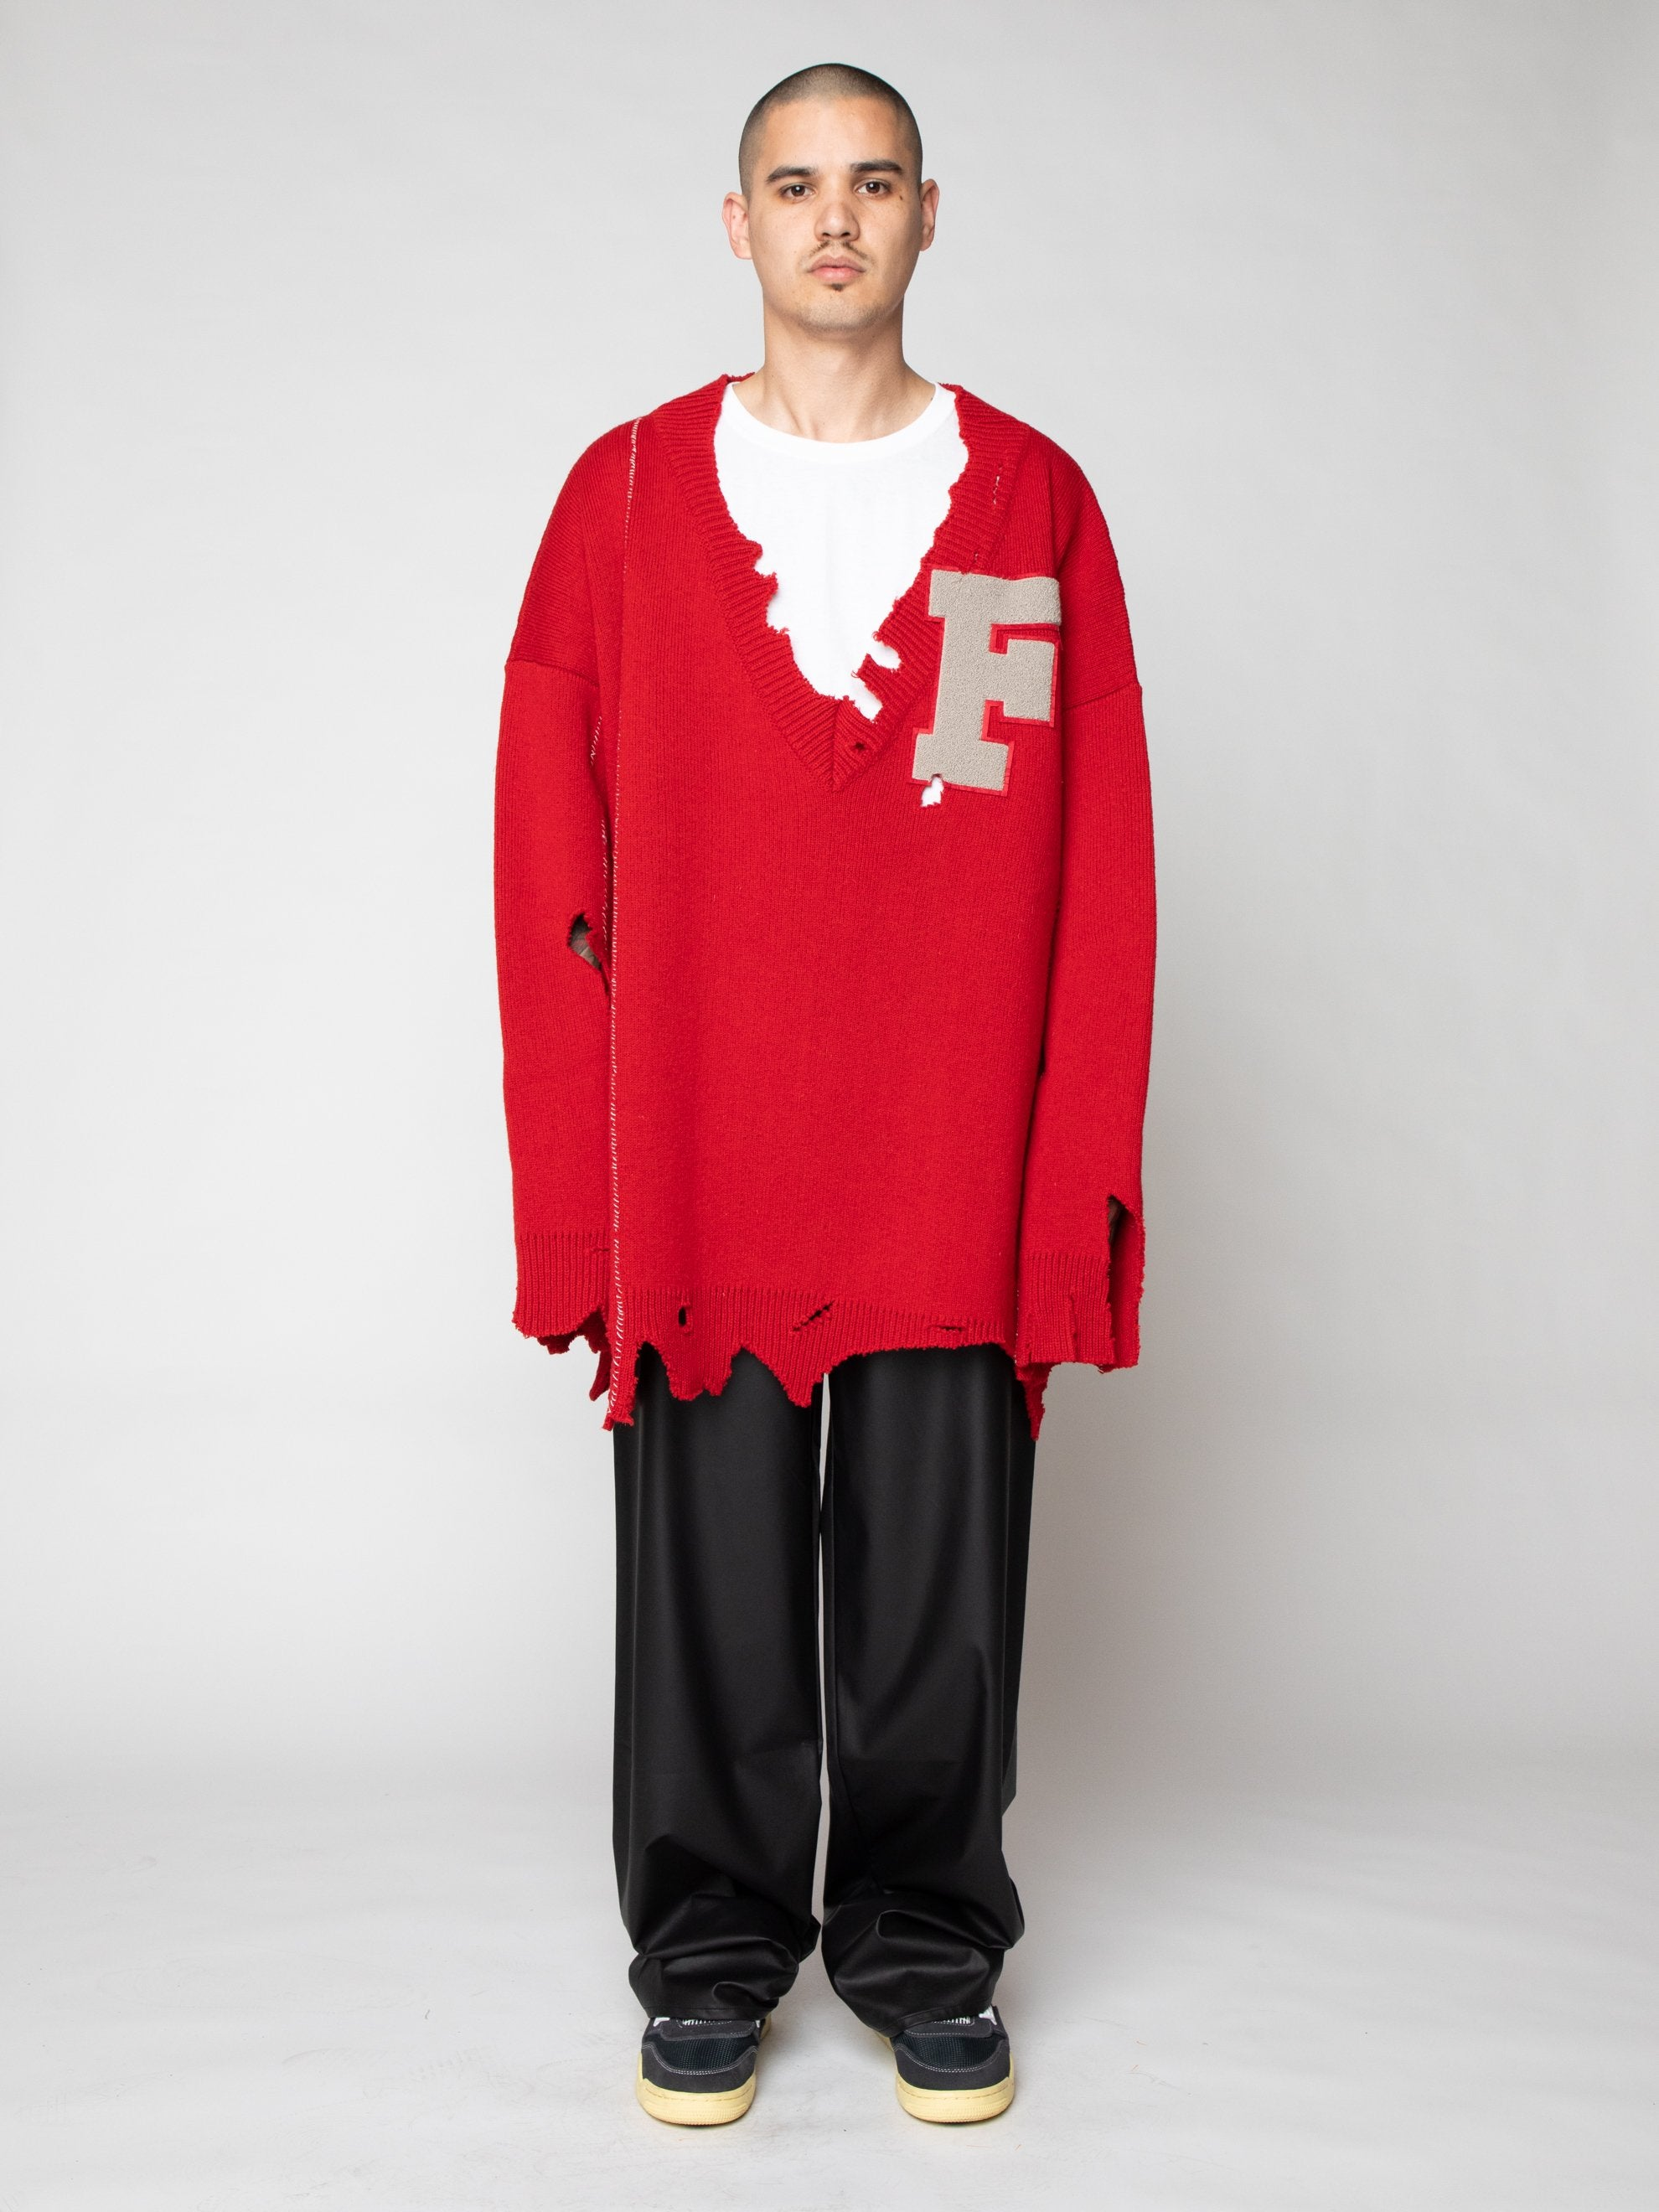 Red Oversized Destroyed V-Neck Sweater With F-Badge 2